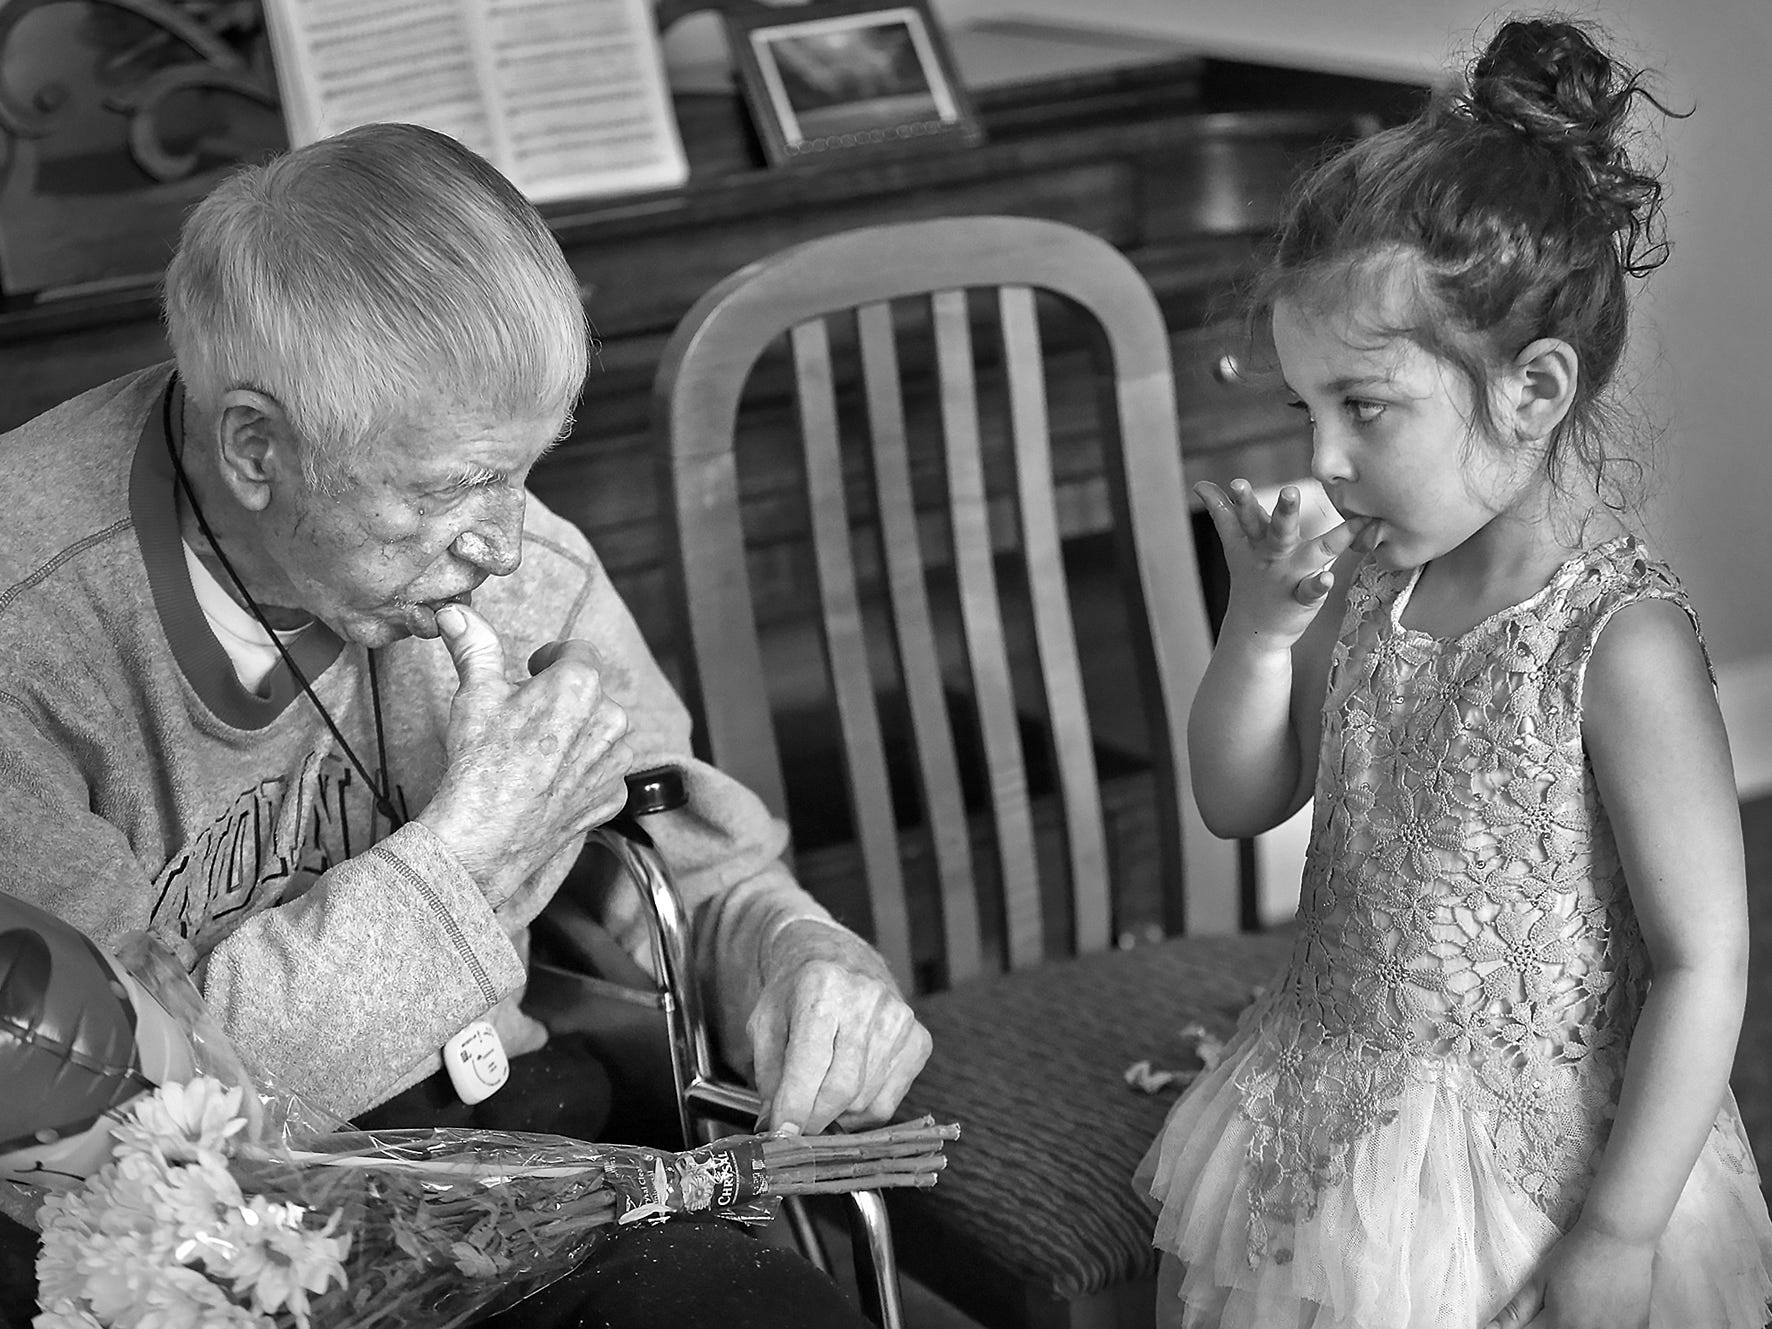 Dewey Logeland, left, and Julia Gonzalez, lick their chocolatey fingers, as they visit at the Abbie Hunt Bryce Home, Friday, April 27, 2018.  The home offers hospice for the dying poor. Julia, whose mother works often at the home, shares a love of horses with Logeland.  She and her family visited him, and shared chocolate and flowers.